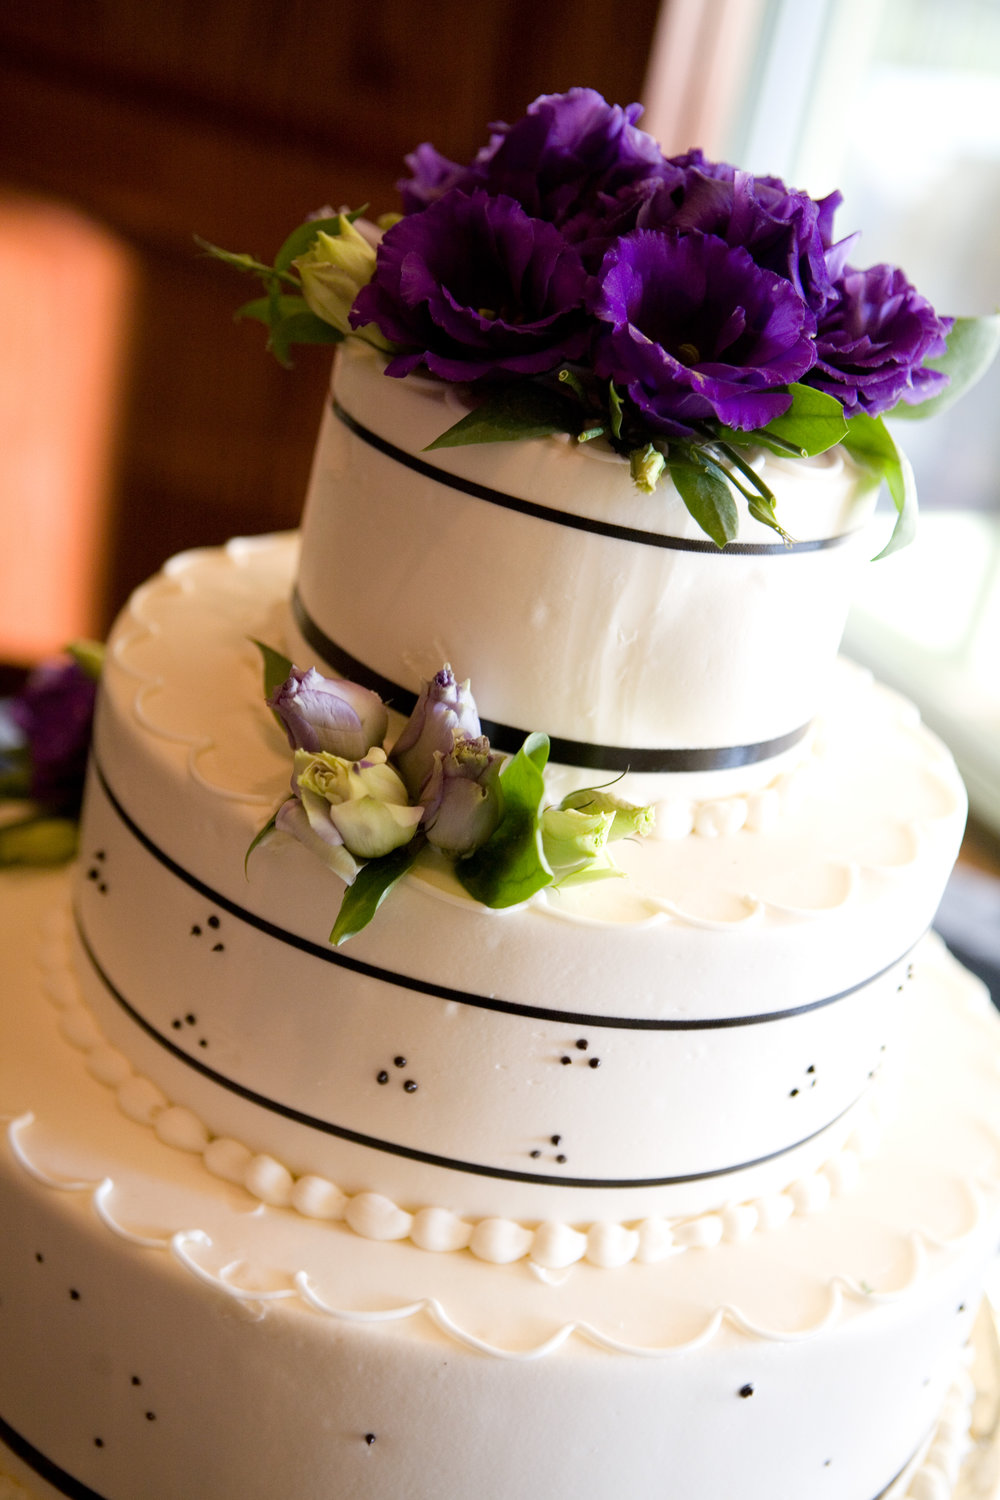 Purple lisianthus place on wedding cake. Wedding cake flowers in purple